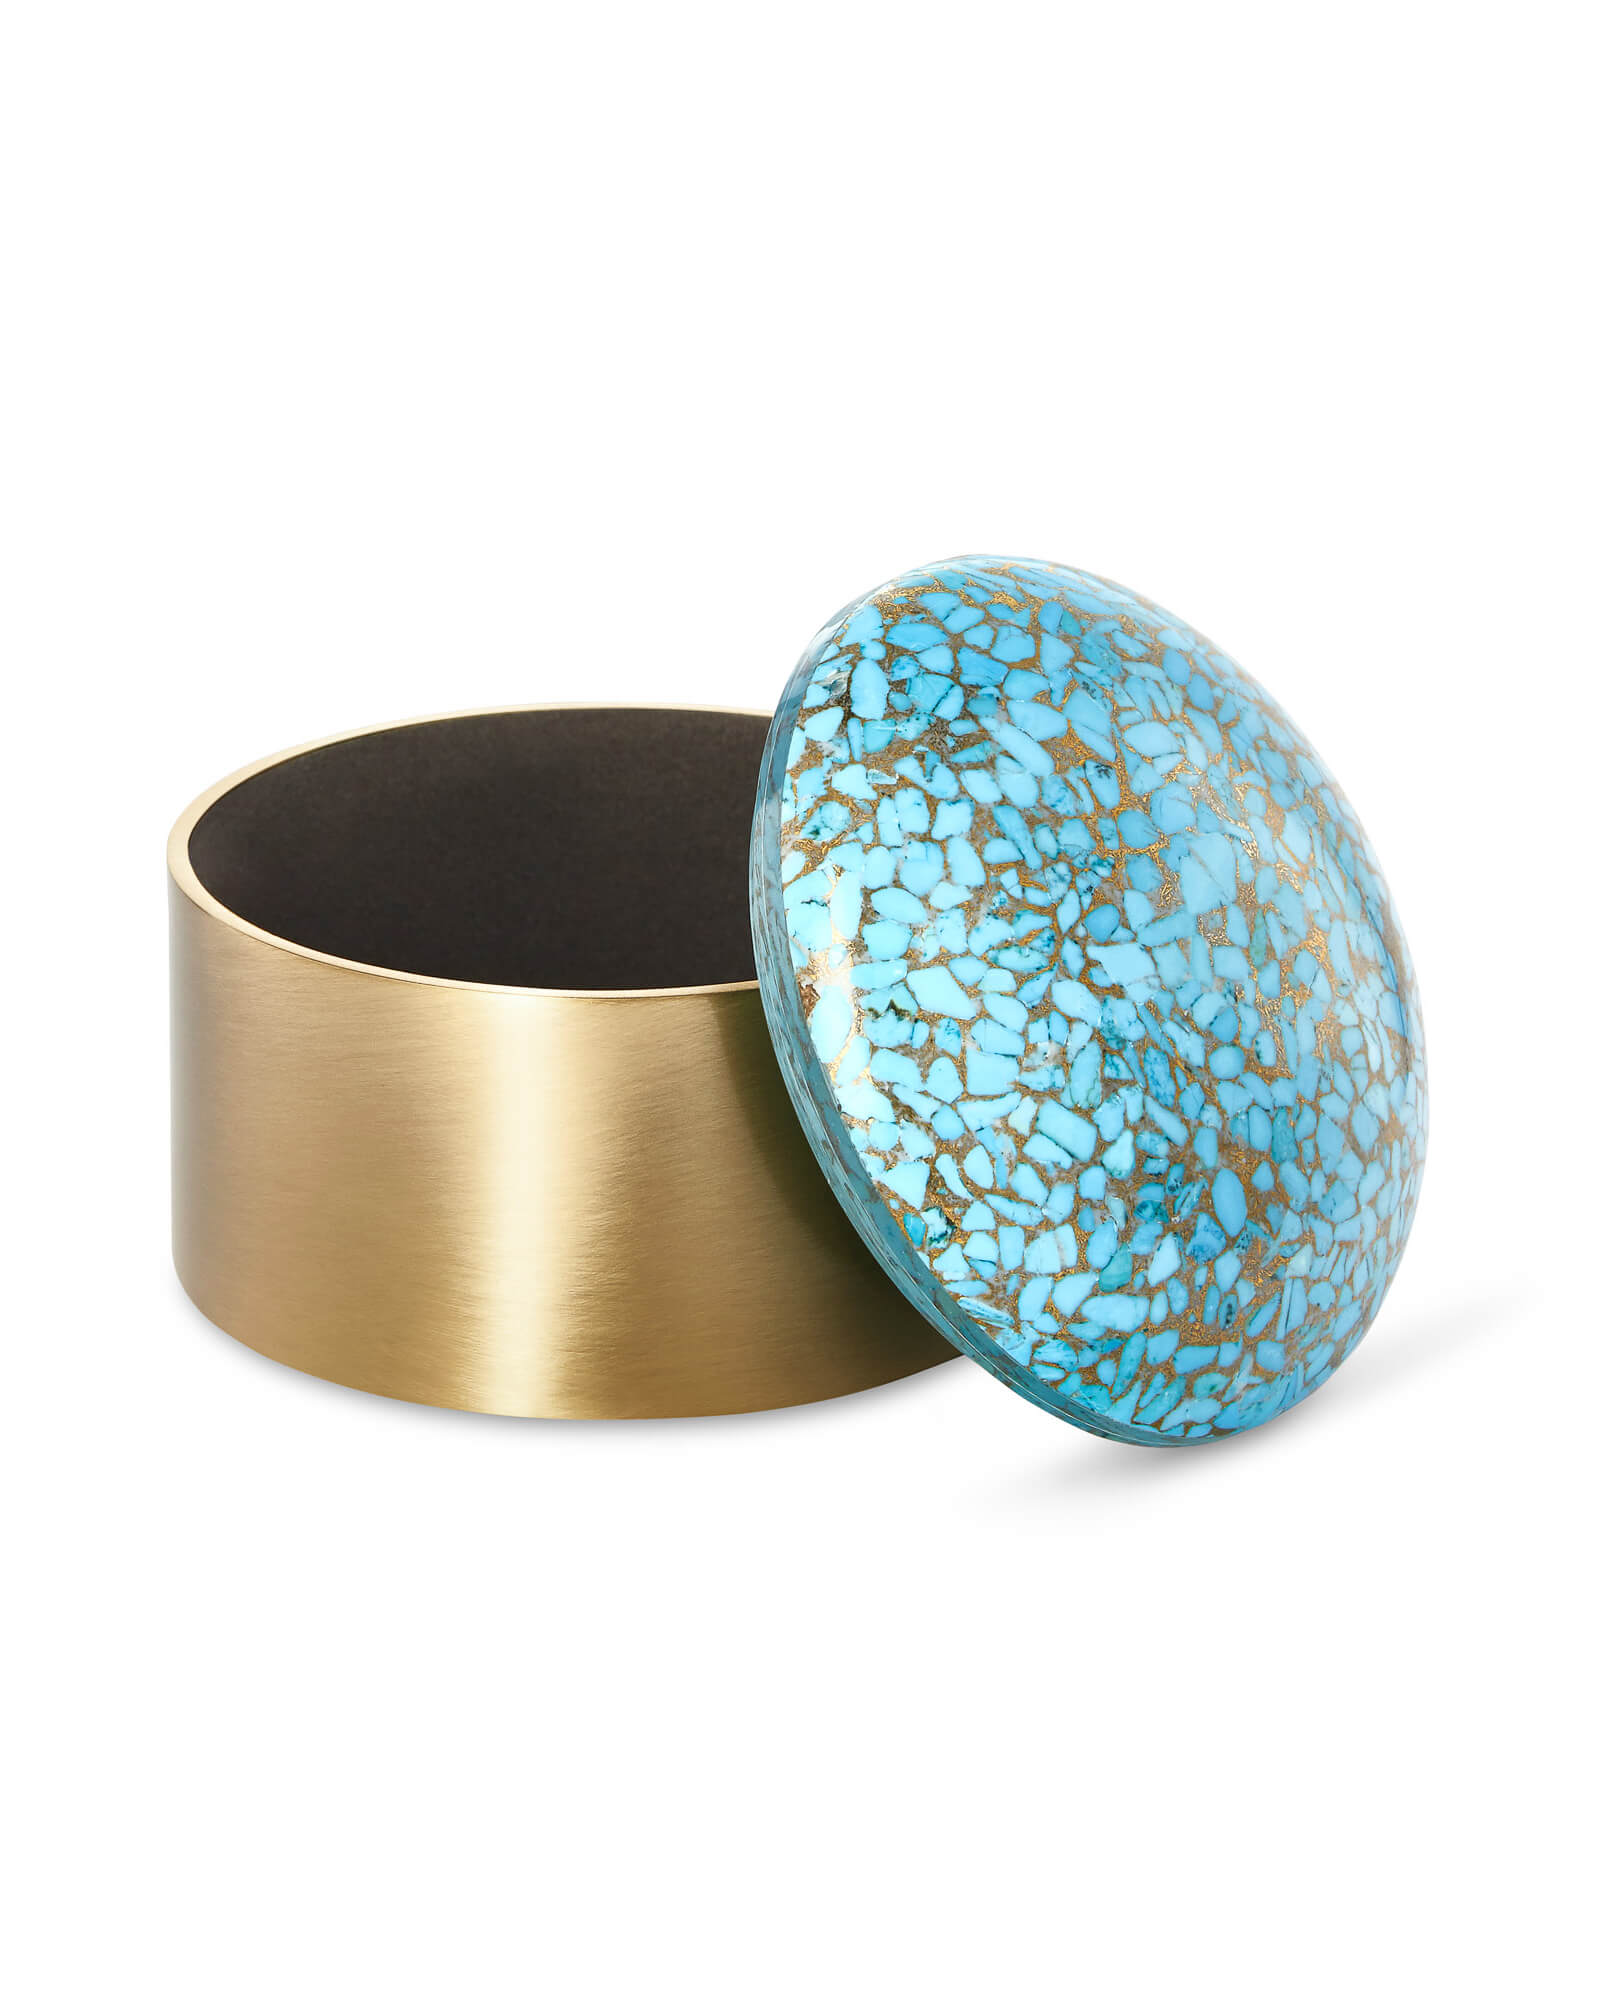 Decorative Brass Box in Bronze Veined Turquoise Magnesite